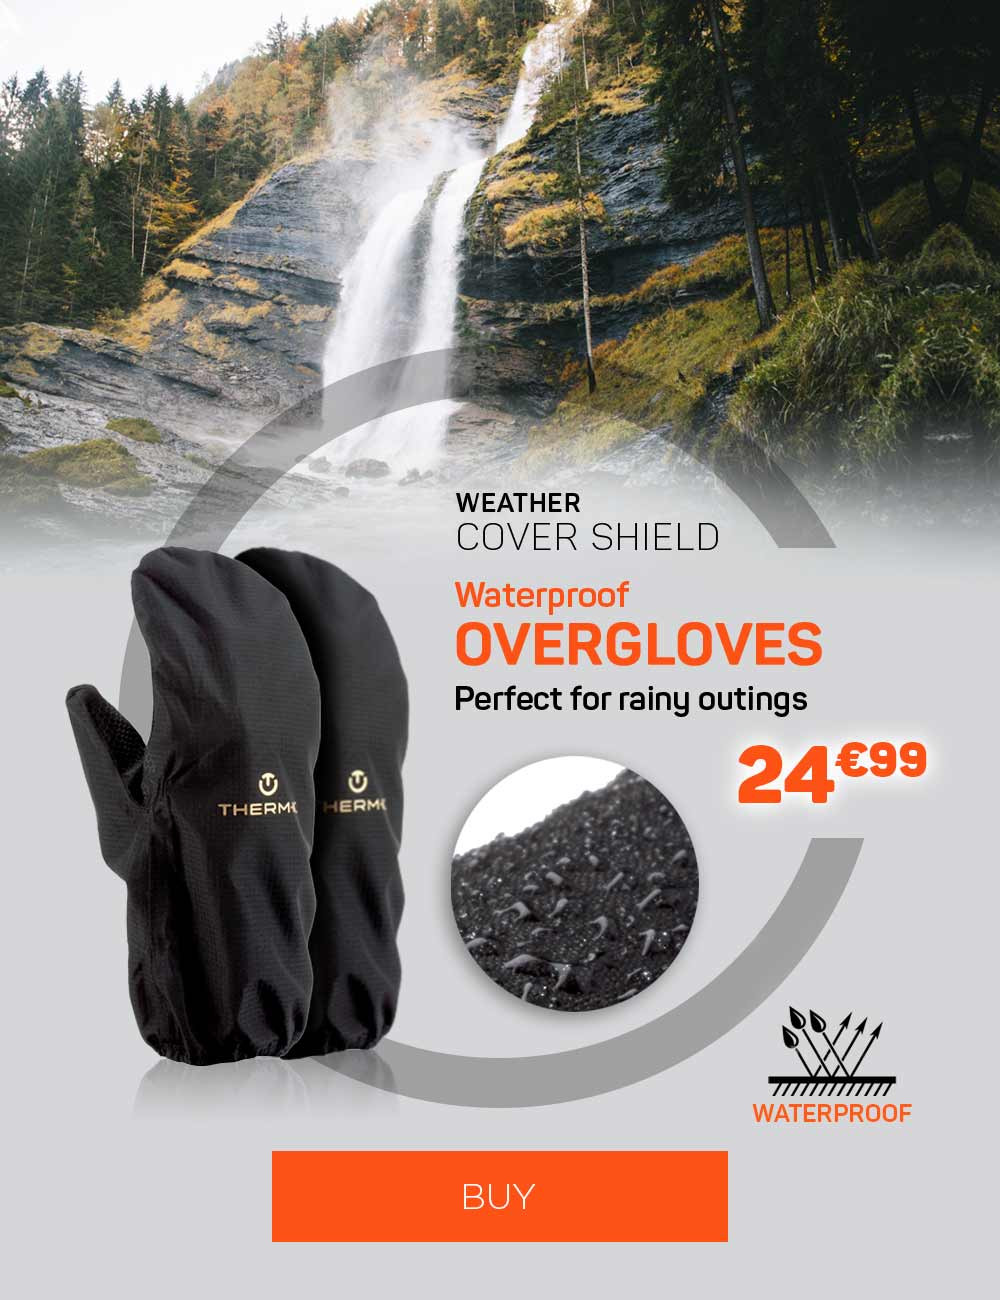 Waterproof overgloves, perfect for rainy outings